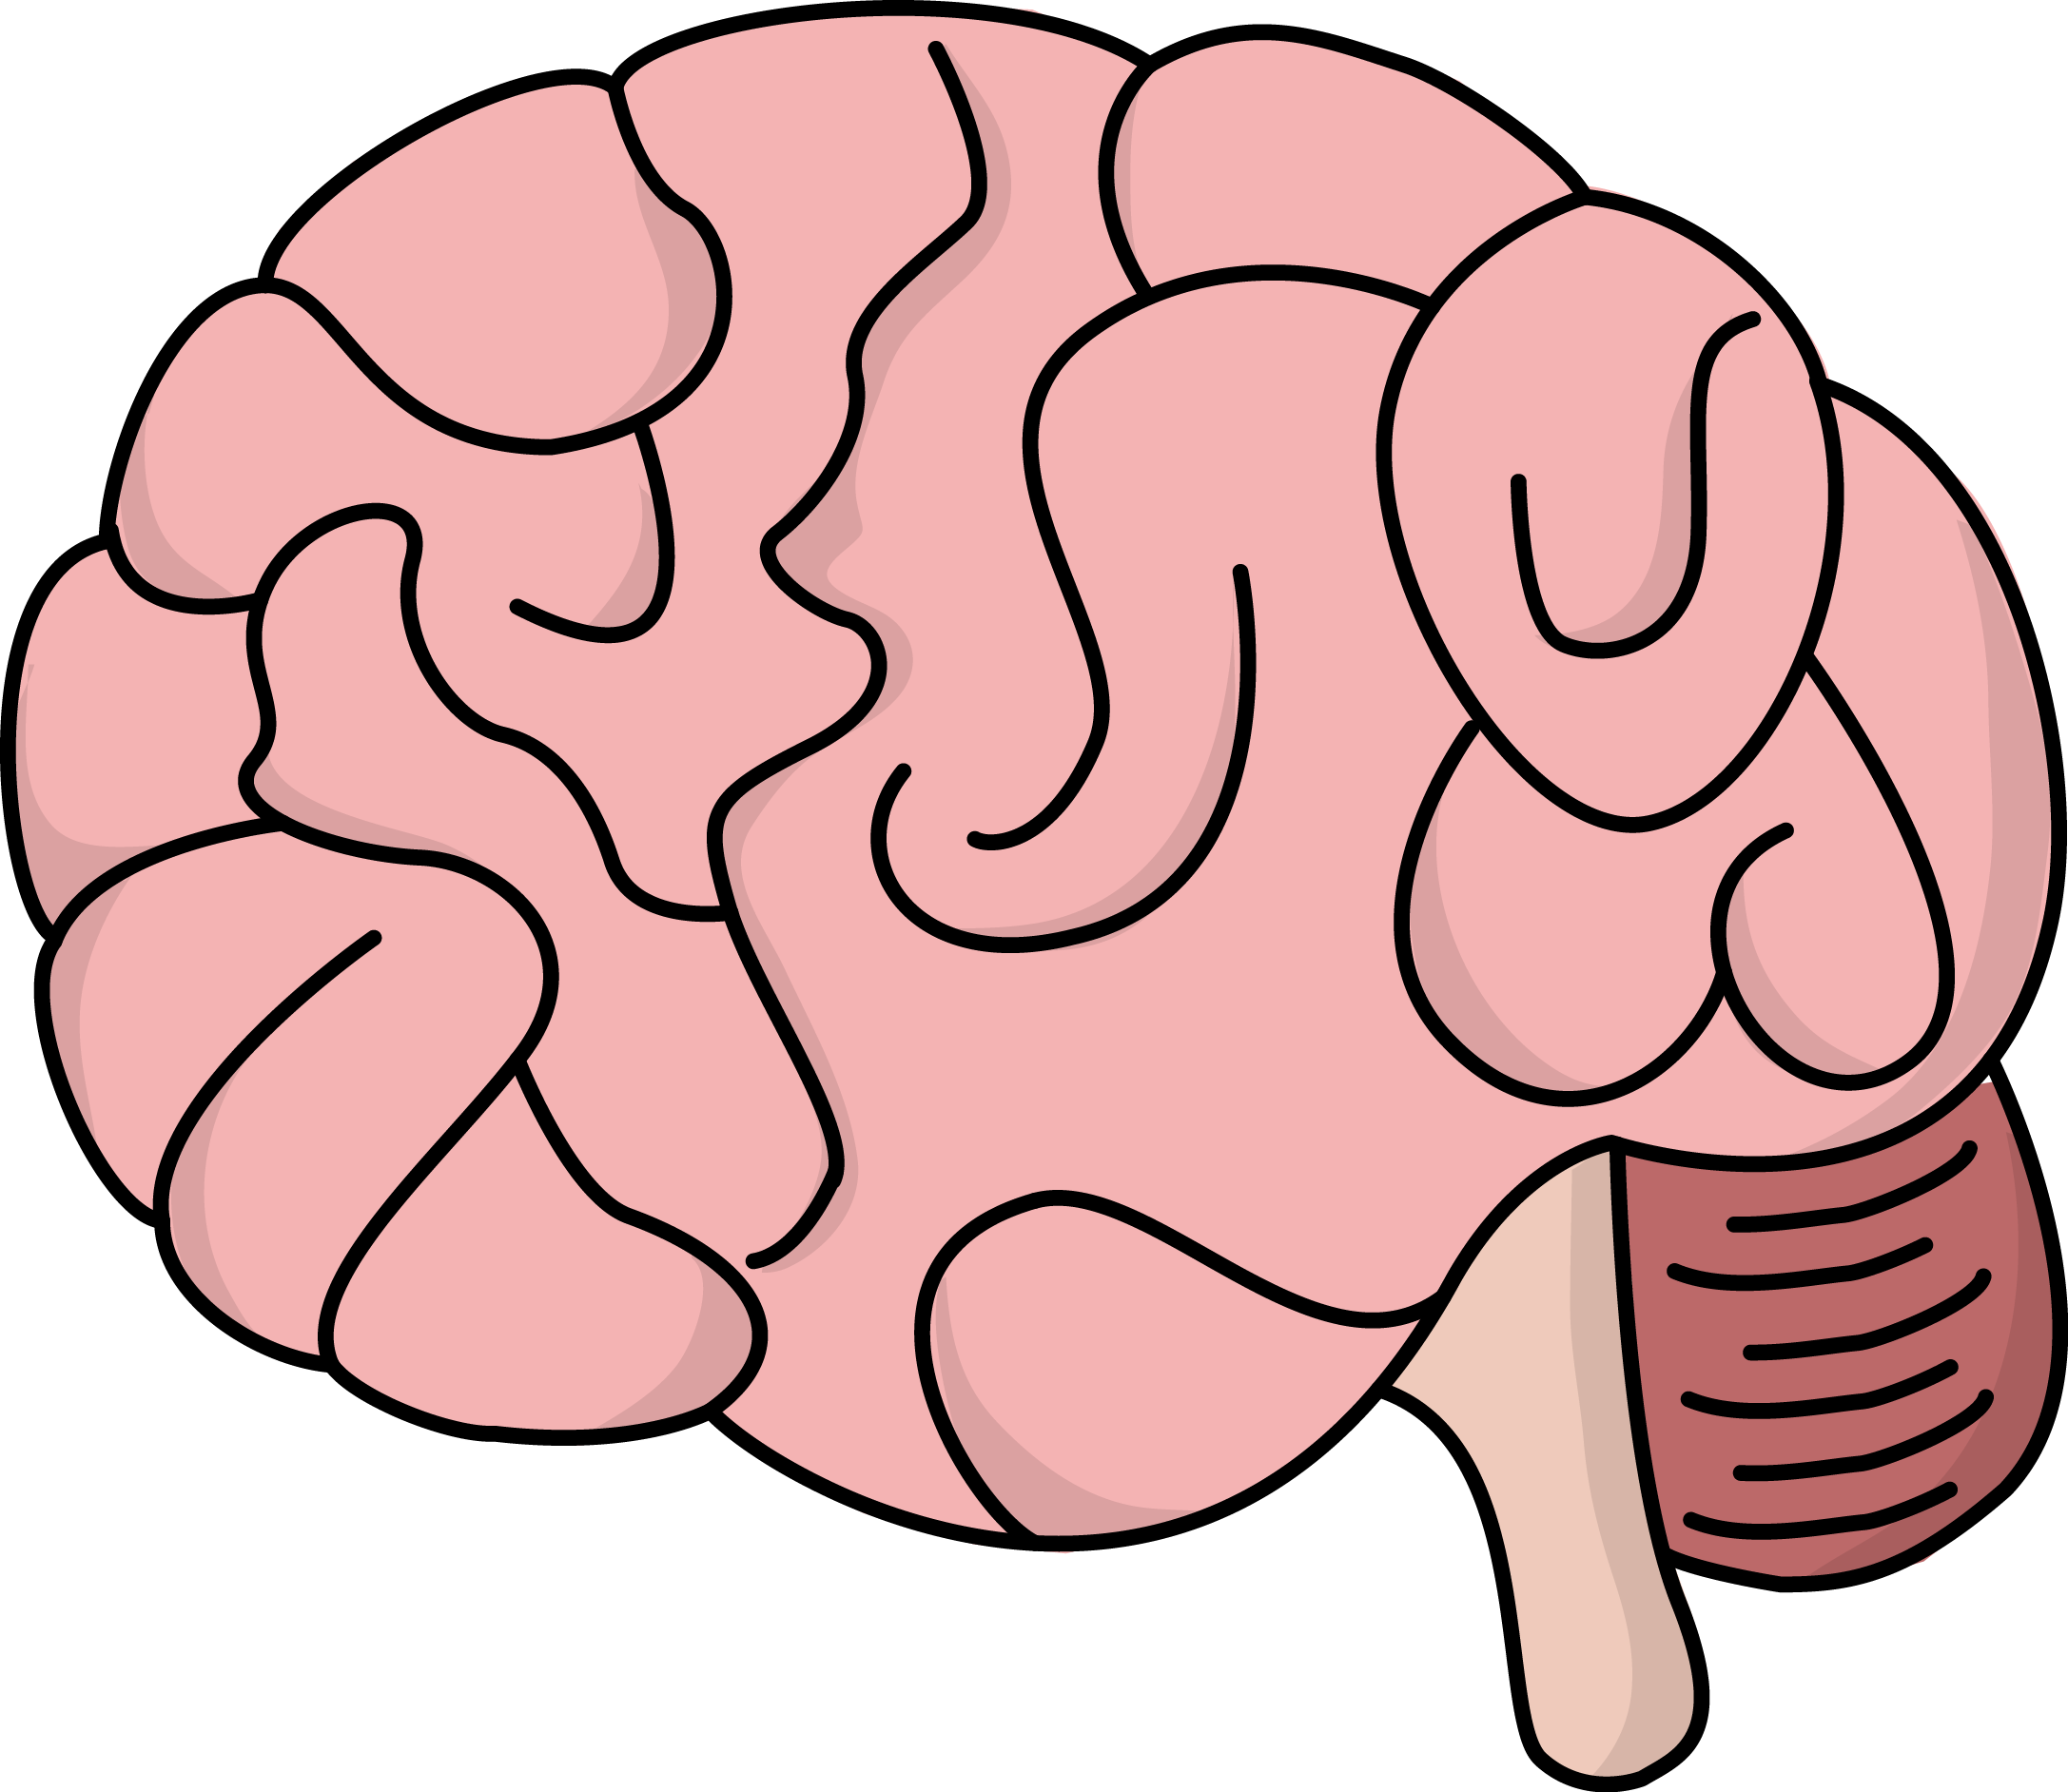 Psychology clipart brain function. Human at getdrawings com